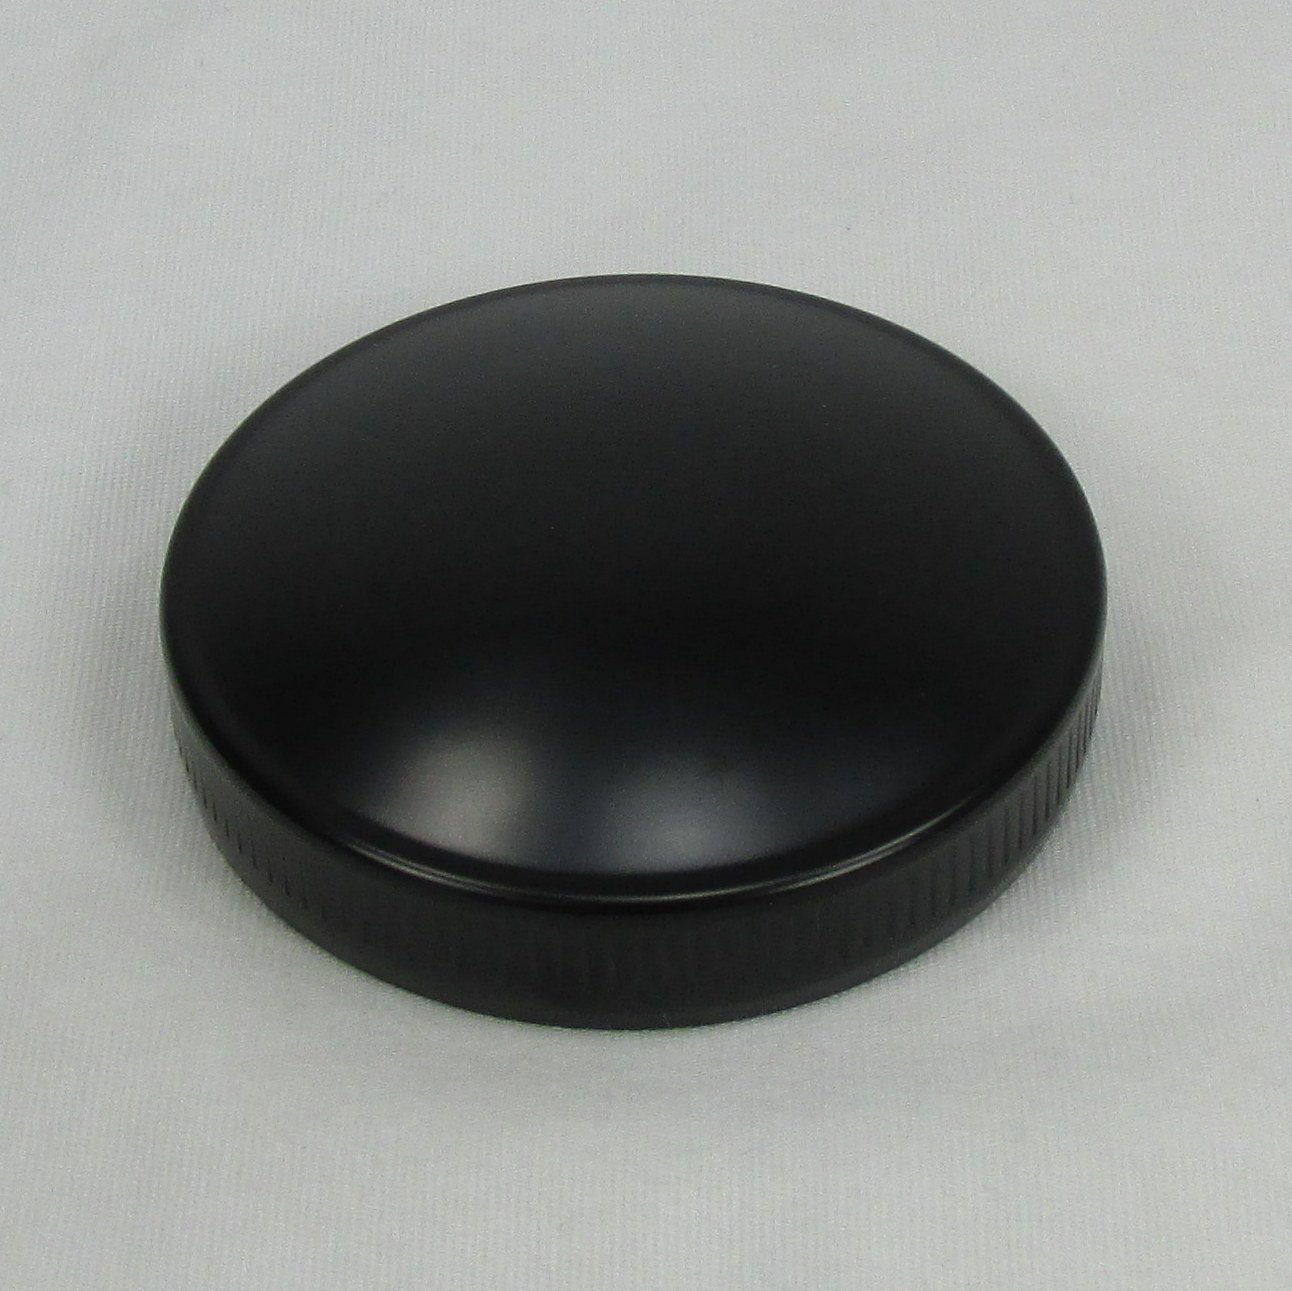 1936 Chopper Bobber Cafe Racer Replaces HD 61103-36 36//73BLK Early 1973 OE Harley Satin Black Vented Motorcycle Gas Tank Cap Bayonet CAM Style